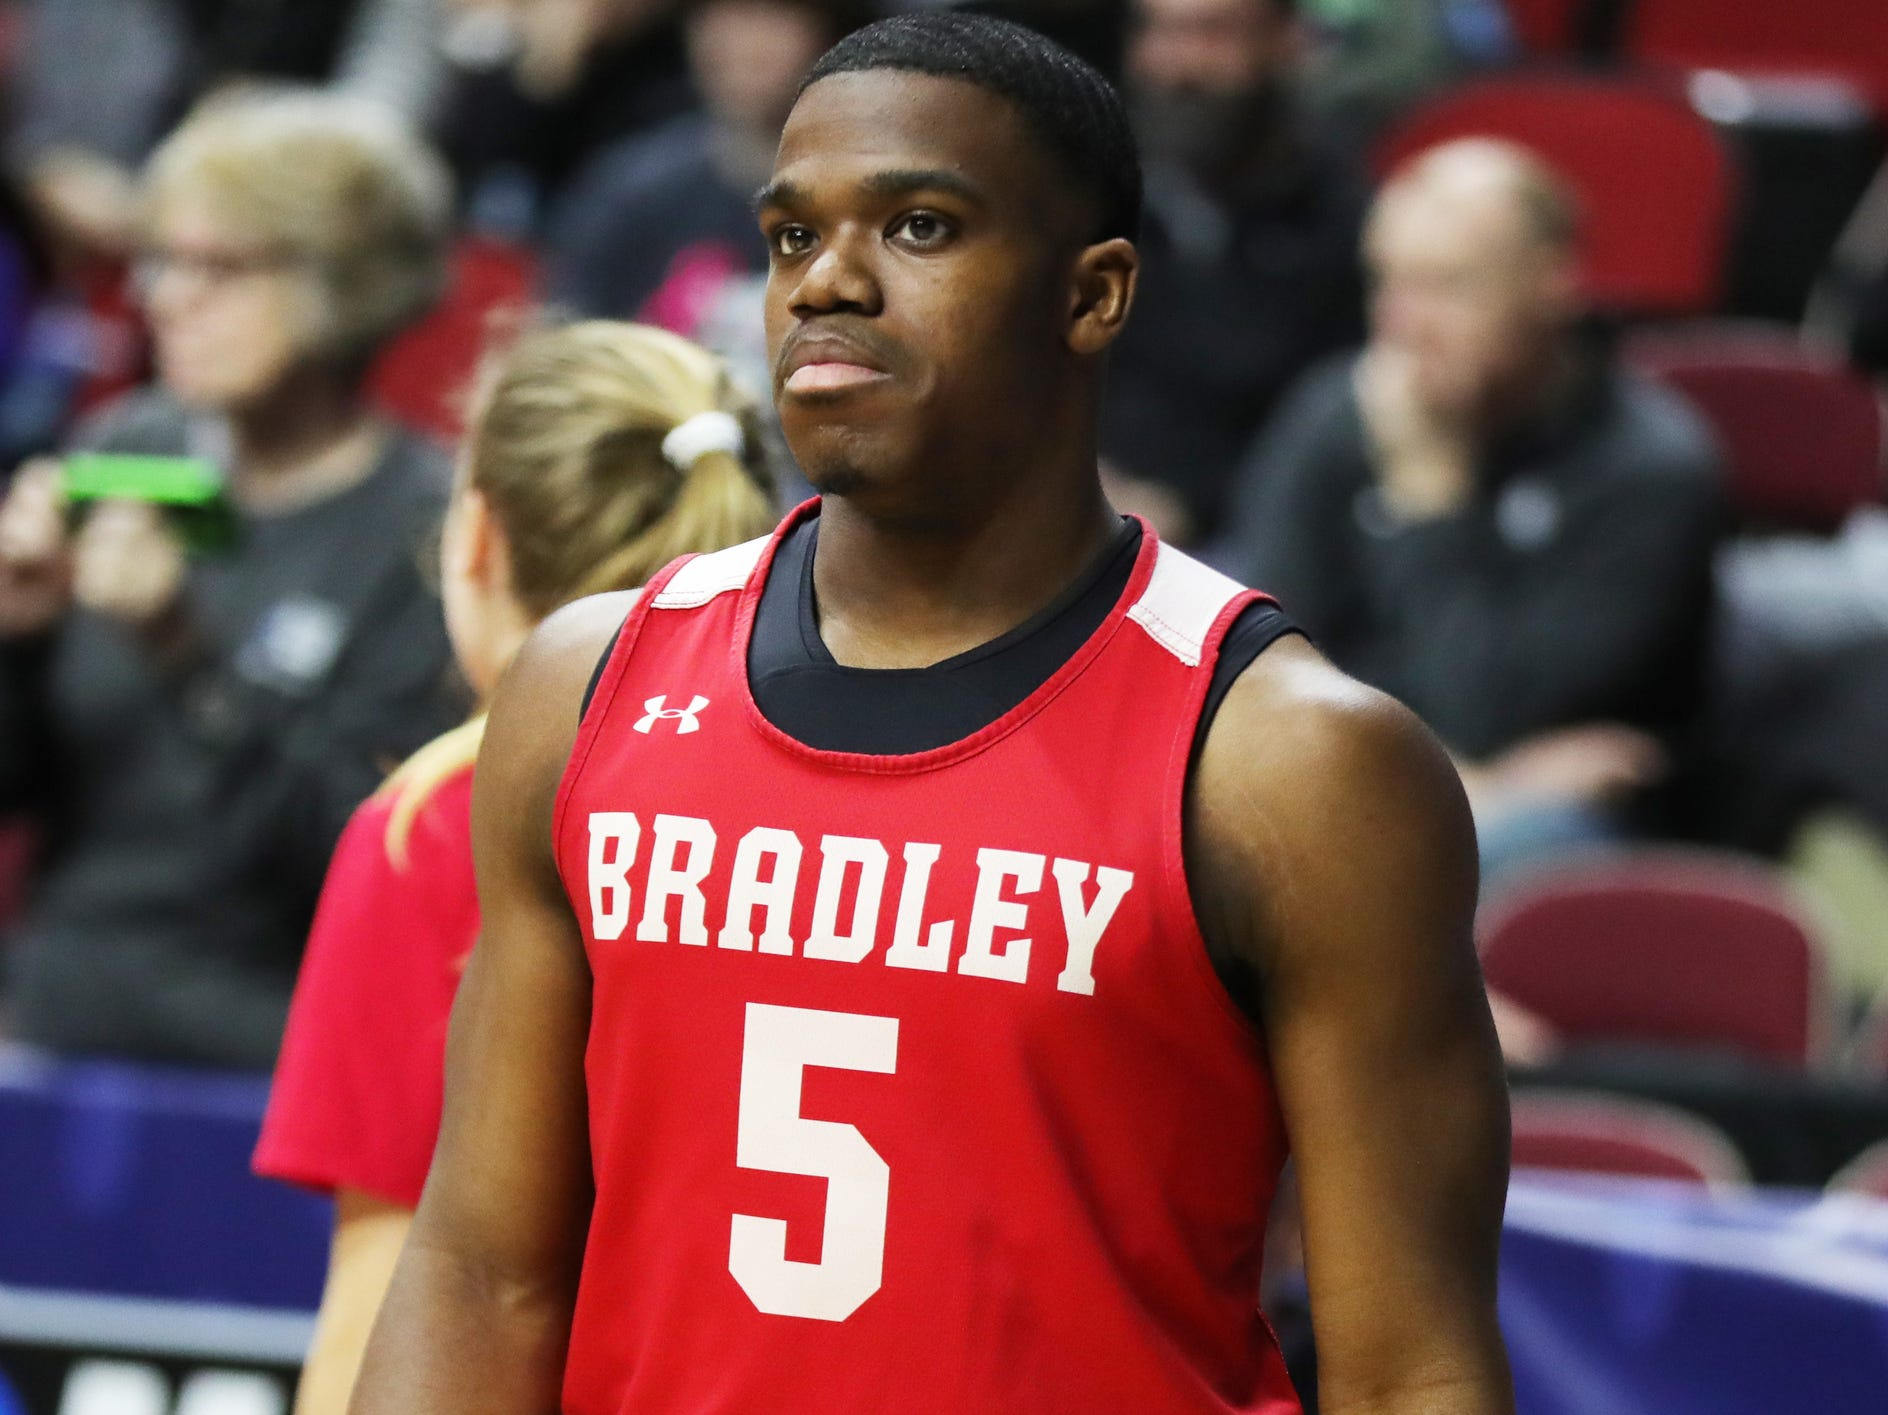 Bradley guard Darrell Brown practices for his team's first-round NCAA tournament game against Michigan State on Wednesday, March 20, 2019 at Wells Fargo Arena in Des Moines, Iowa.